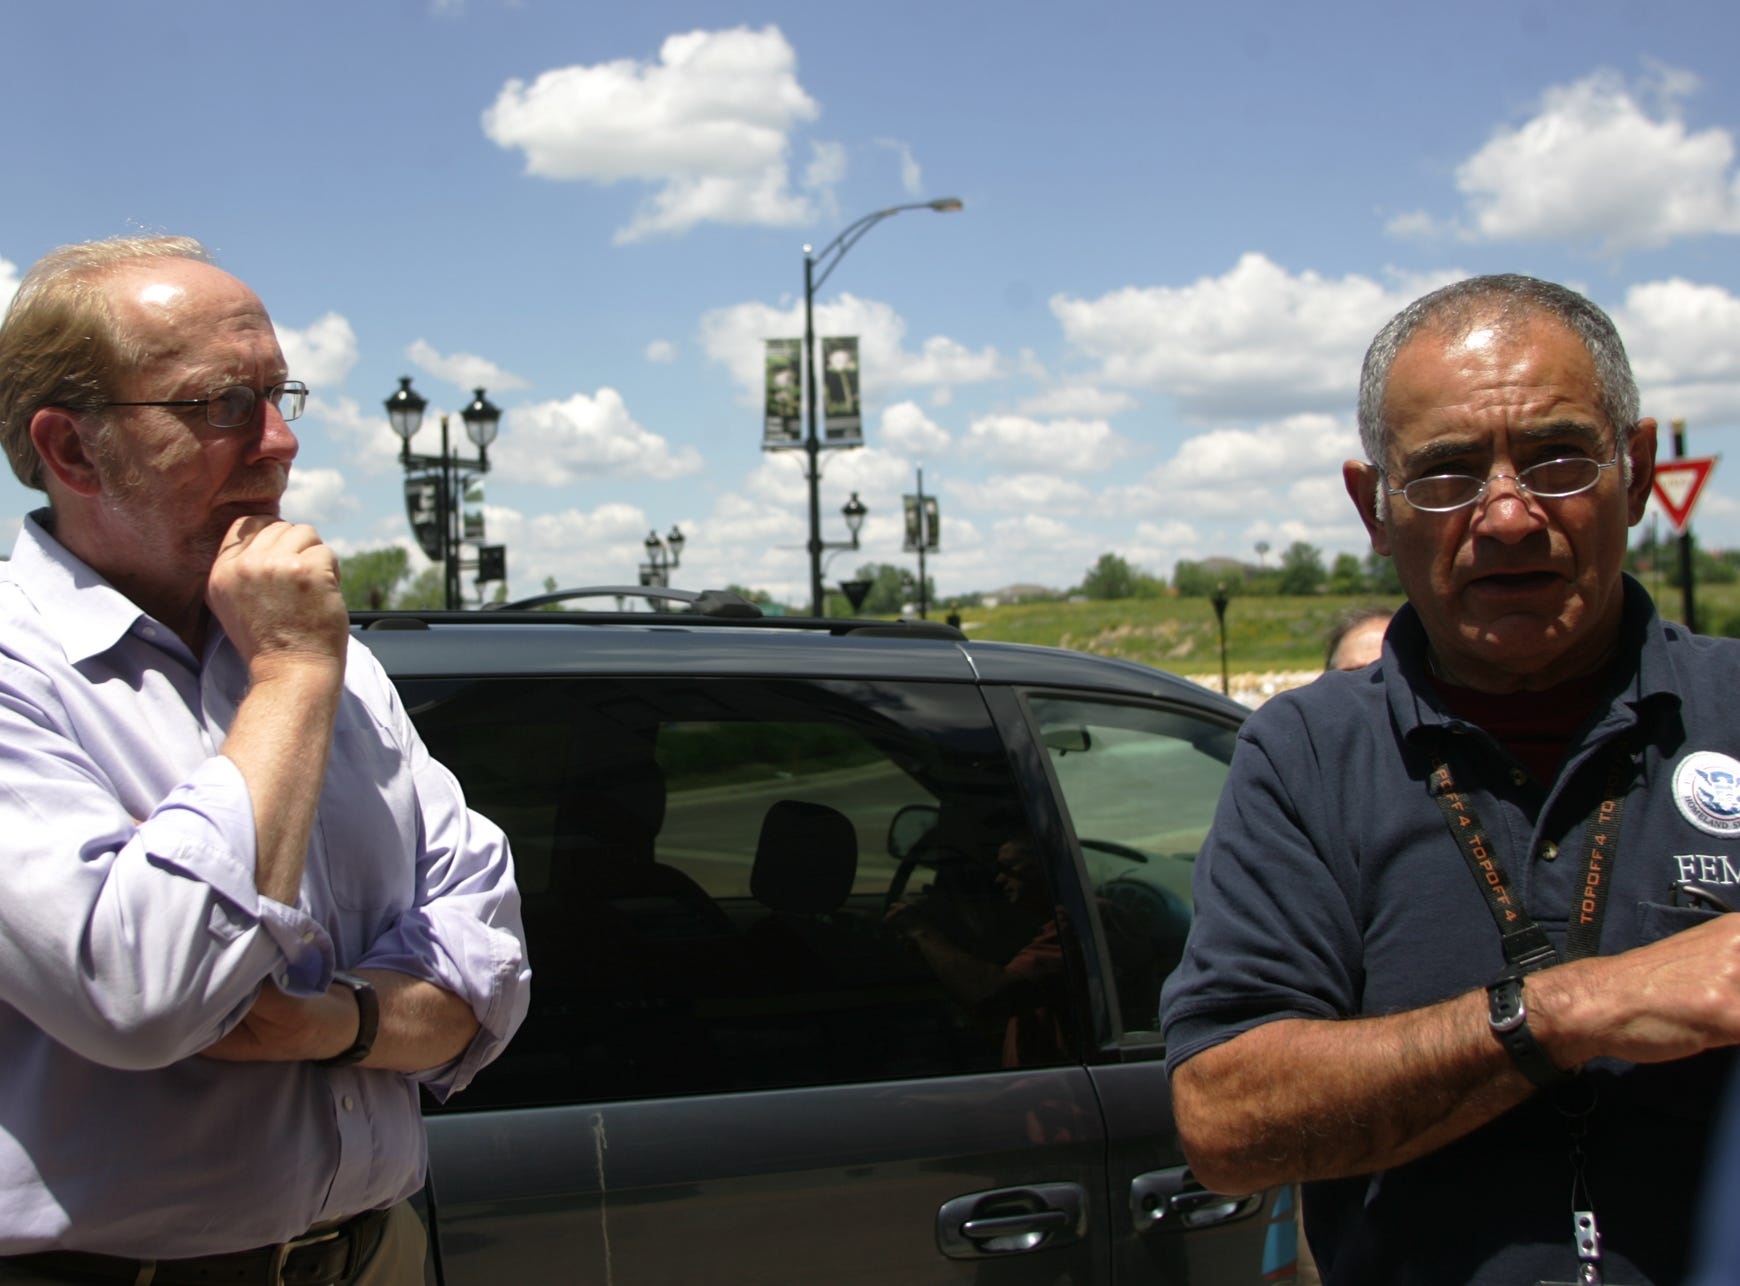 U.S. Rep. Dave Loebsack, left, listens as Ron Chaidez of the Federal Emergency Management Agency describes some of the post-flood cleanup work at the Iowa River Landing development in Coralville on Monday, June 30, 2008.